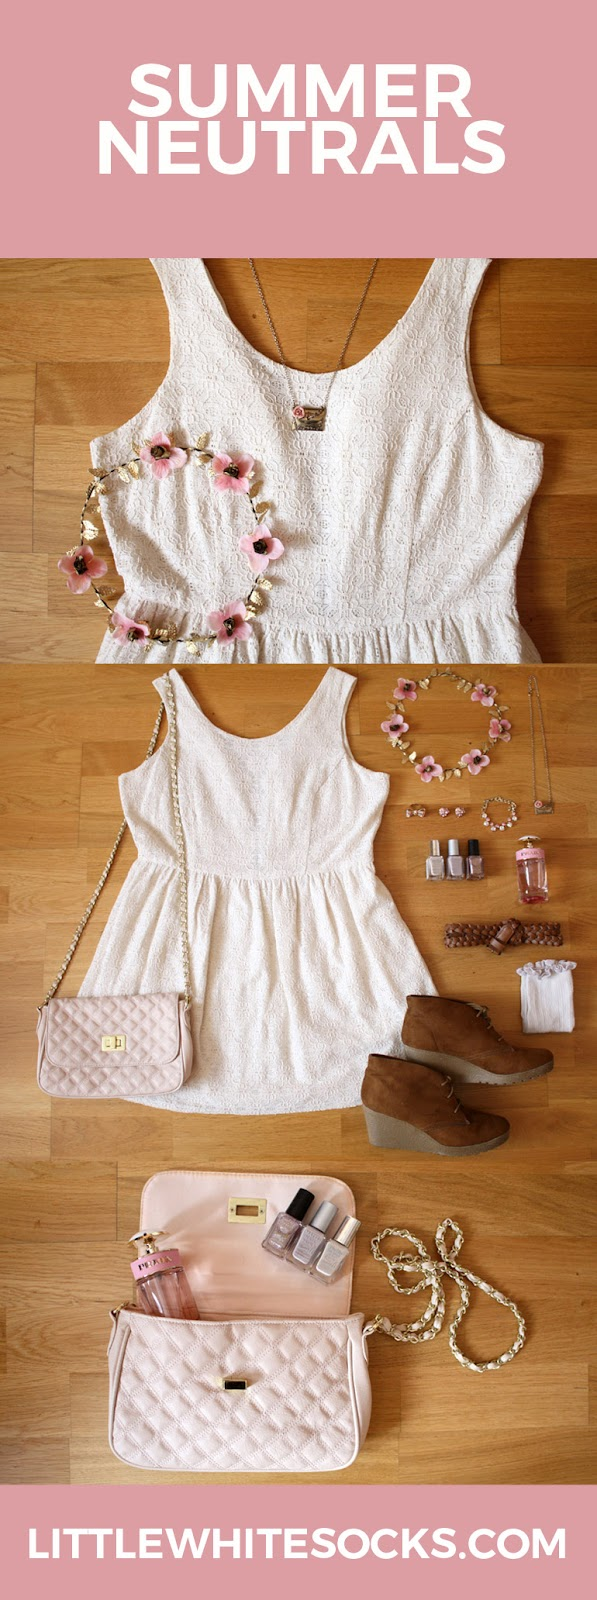 cream lace summer dress outfit